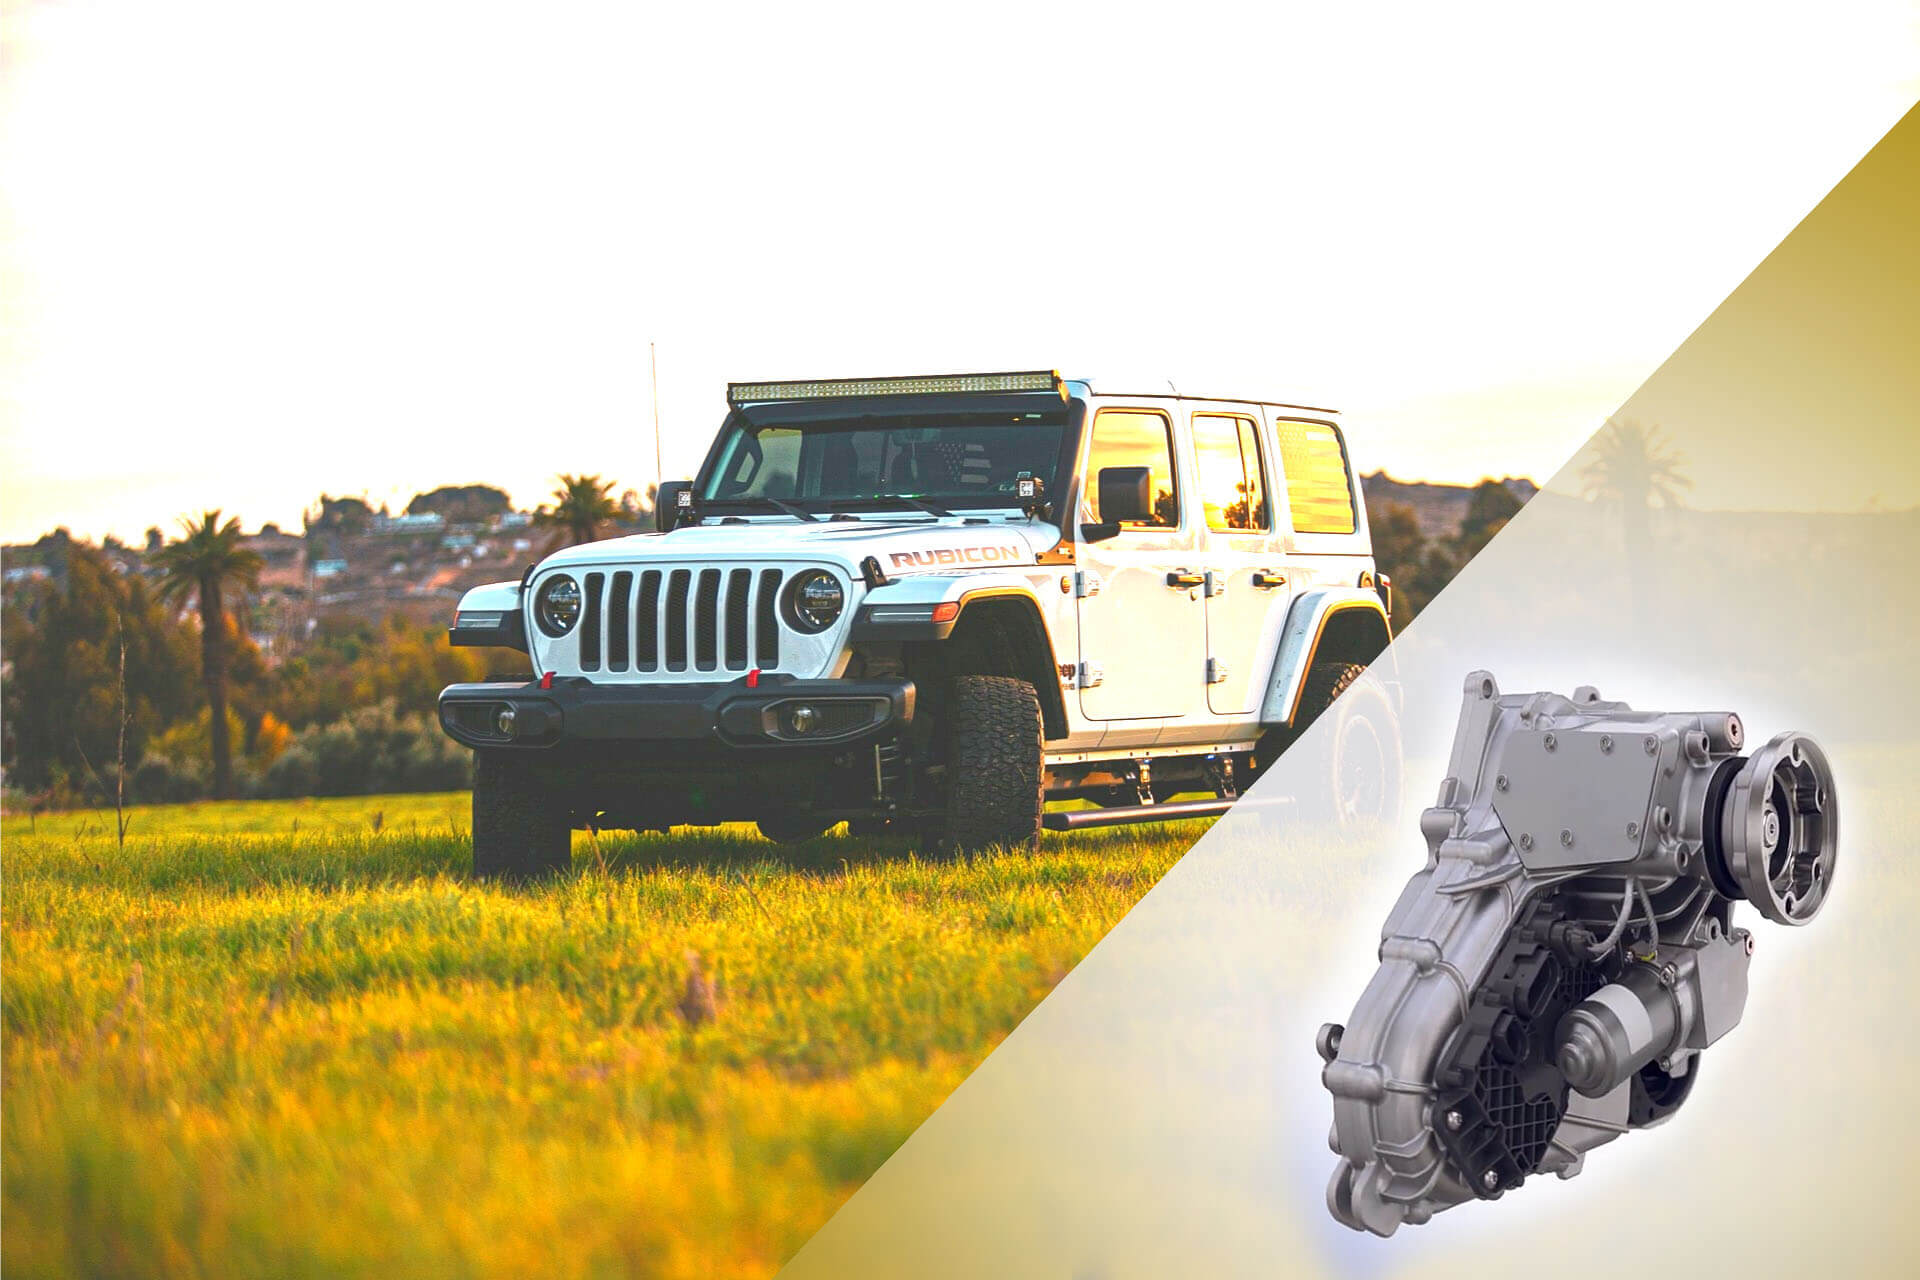 What does a center locking differential do? | everything about diff locks in simplest way